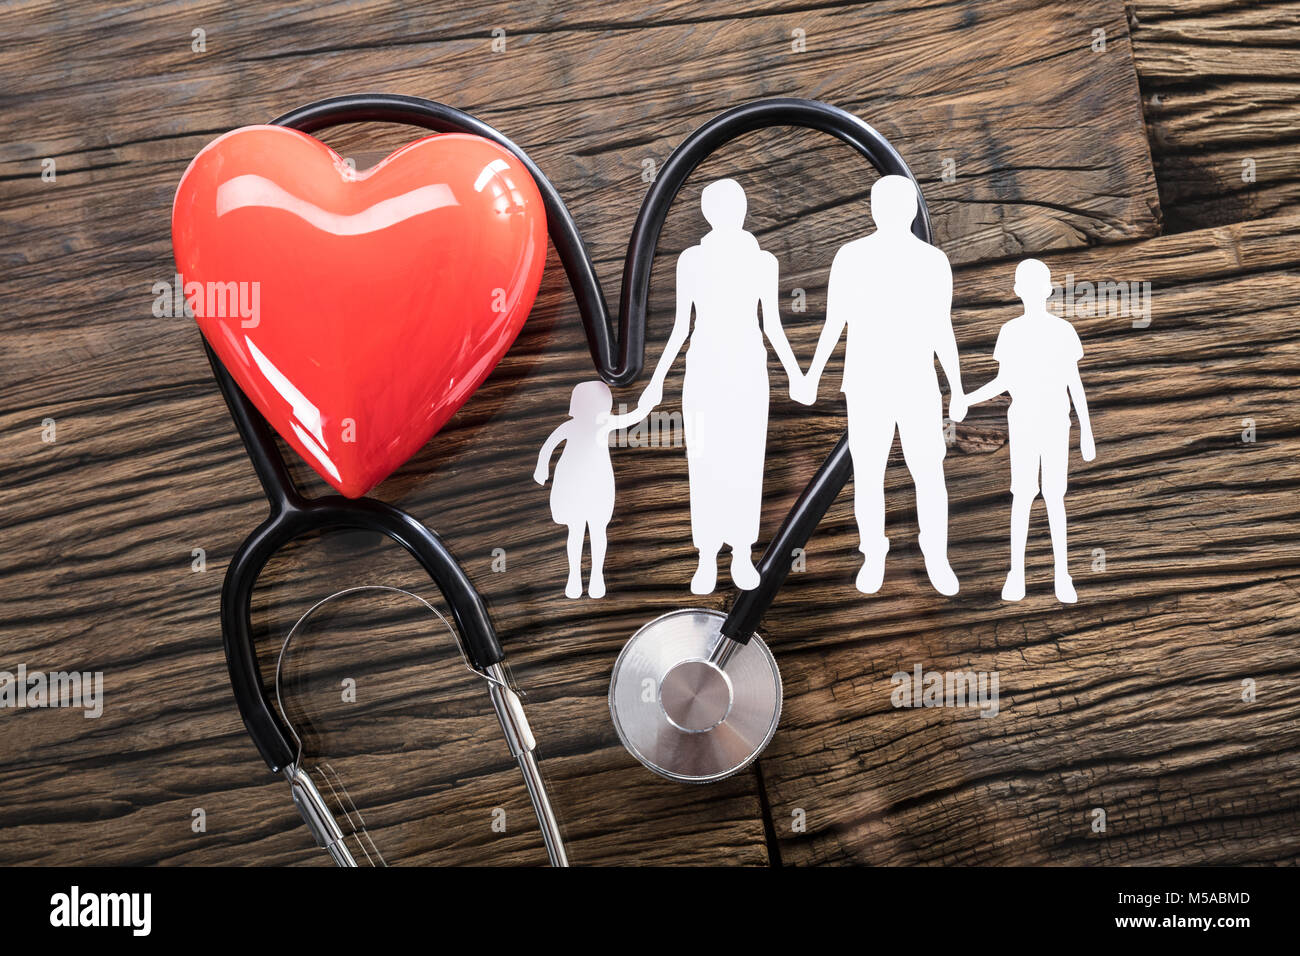 Elevated View Of Family Cut Out And Red Heart With Stethoscope On Desk - Stock Image